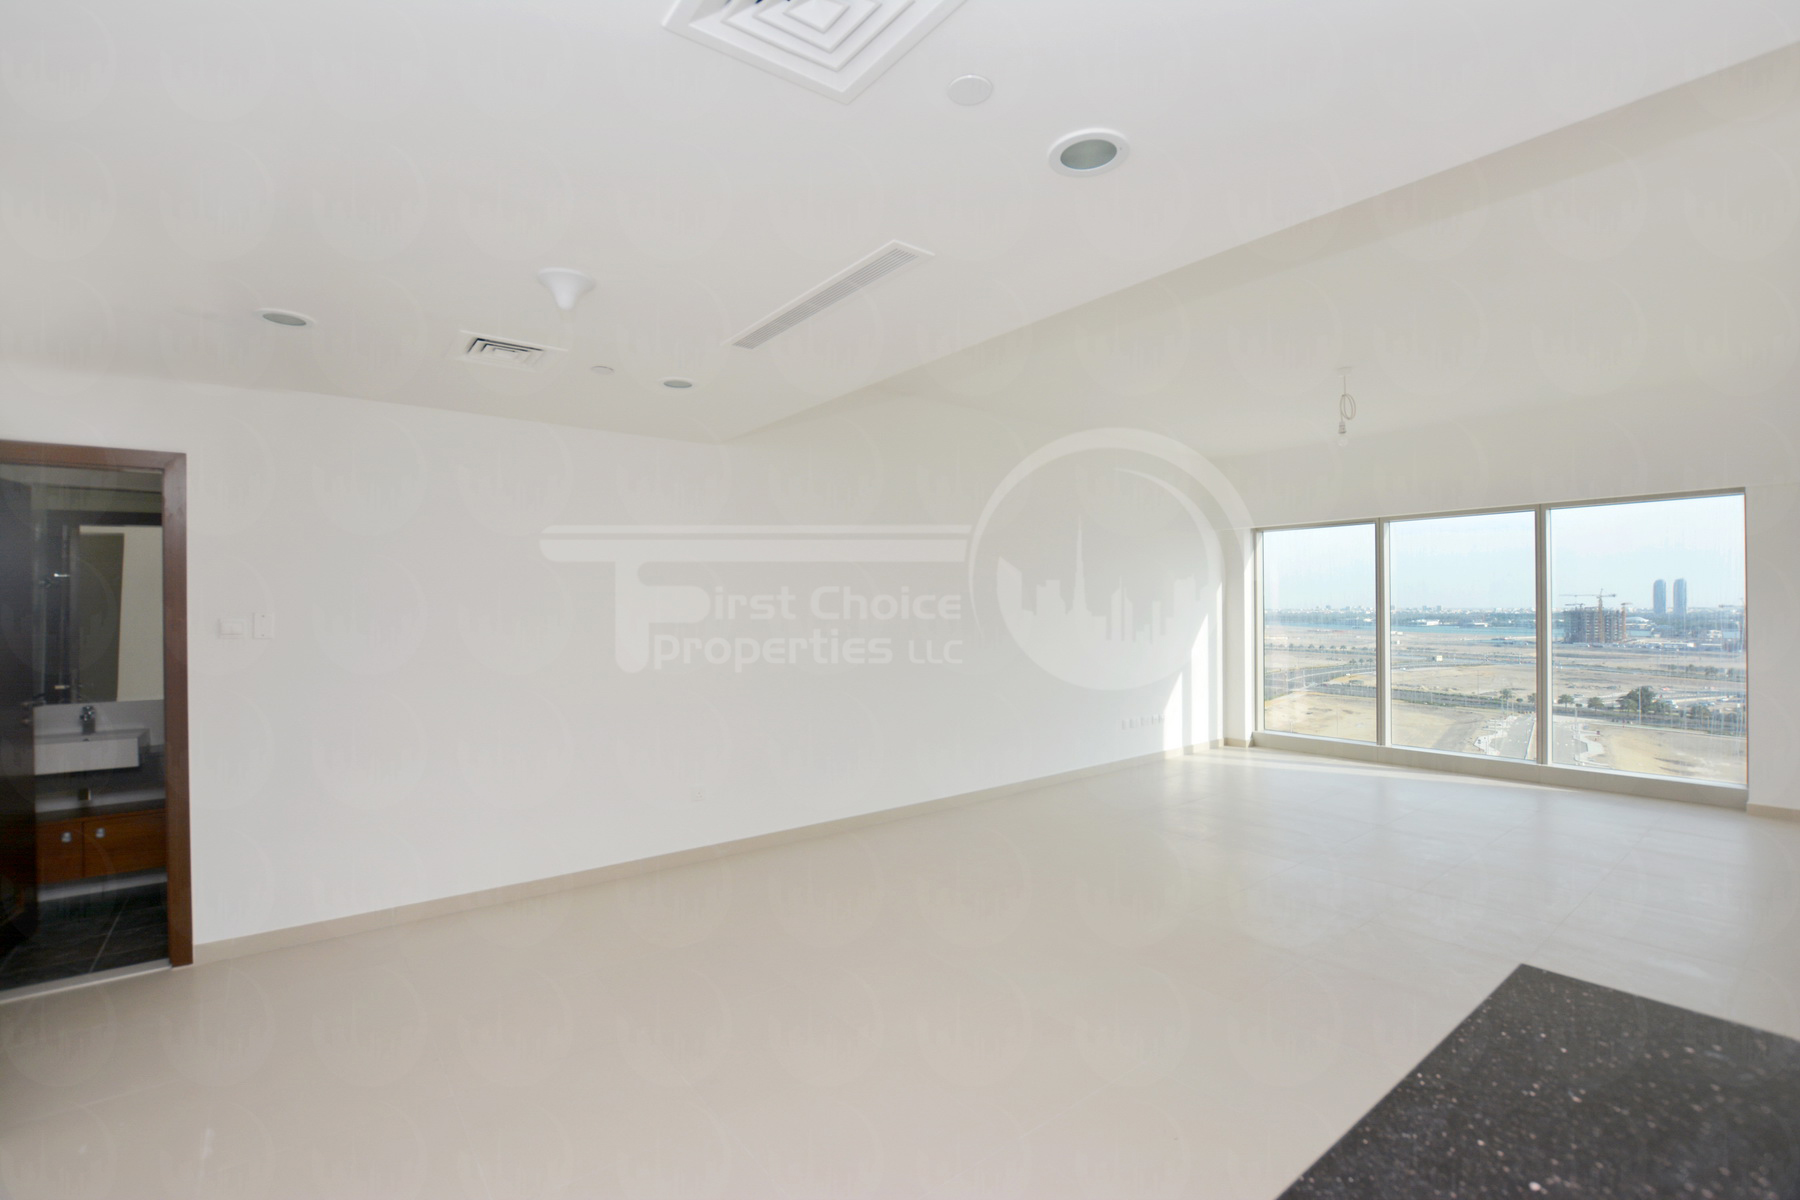 2 Bedroom Apartment - Abu Dhabi - UAE - Gate Tower - Al Reem Island (11).JPG